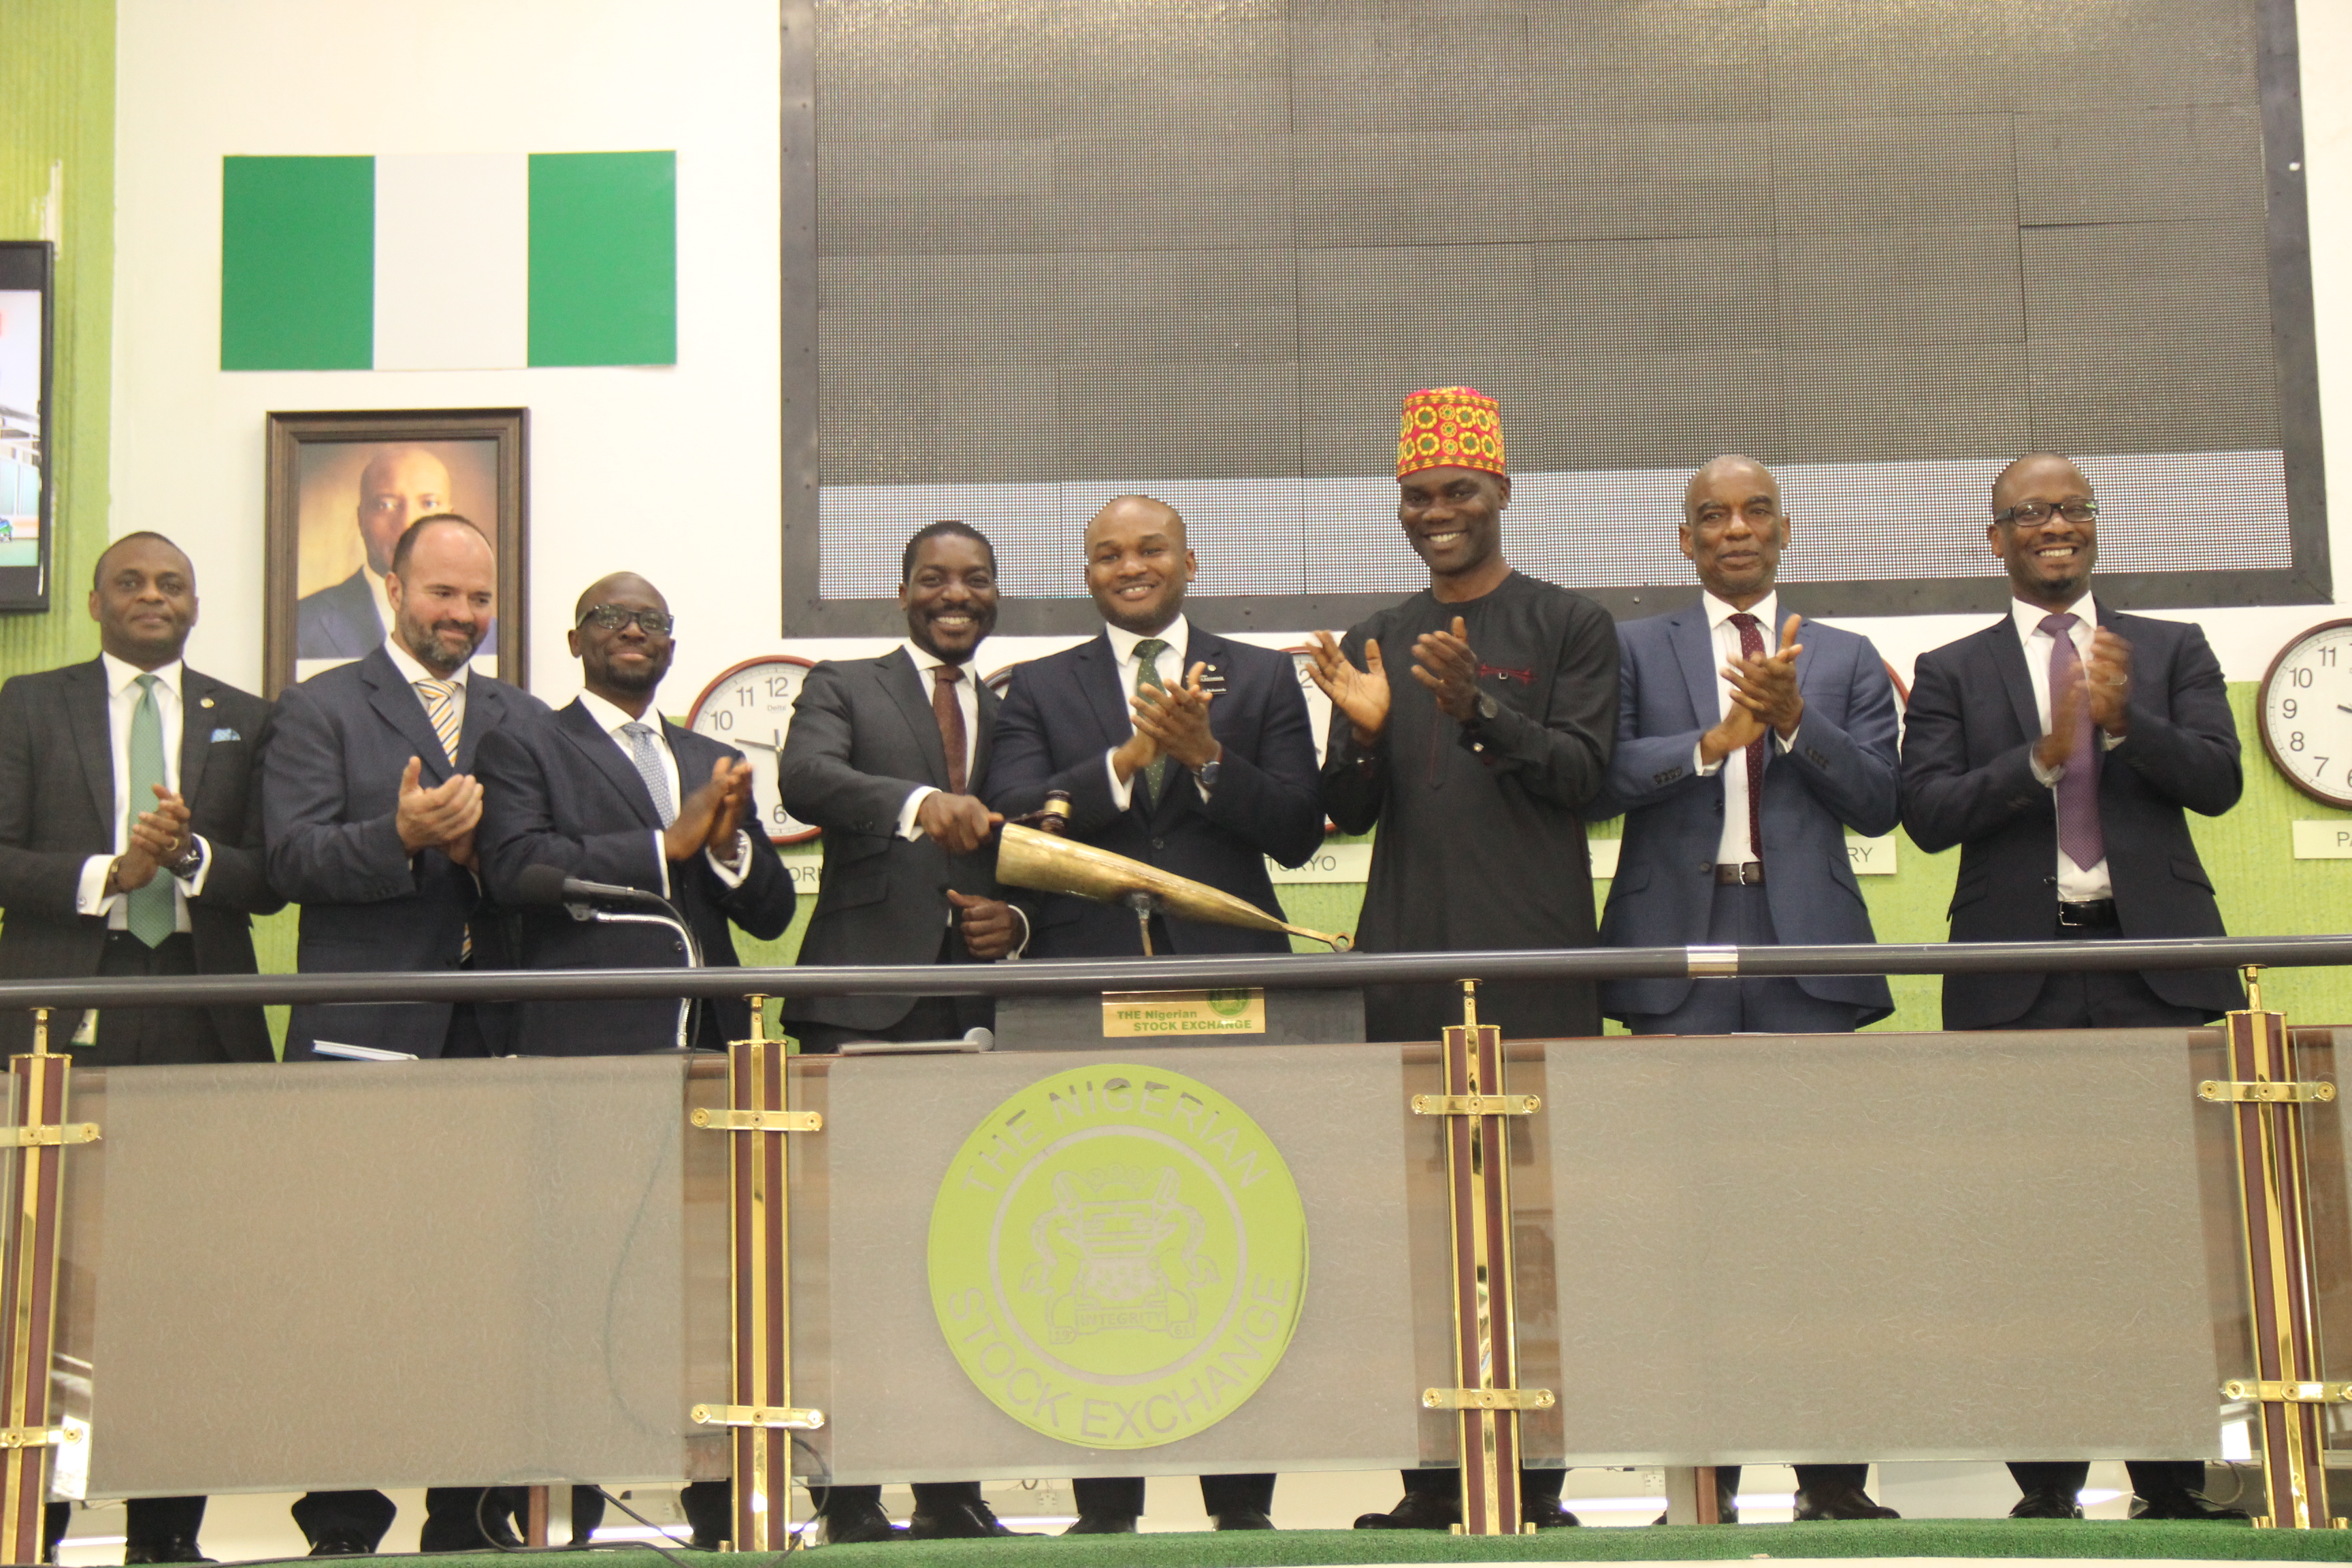 · L – R shows Jude Chiemeka, Divisional Head, Trading Business, The Nigerian Stock Exchange (NSE); Jamie Rixton, Chief Agronomist, Ella Lakes Plc; Wole Onasanya, Chief Financial Officer, Ella Lakes Plc; Chuka Mordi, Chief Executive Officer, Ella Lakes Plc; Olumide Bolumole, Divisional Head, Listing Business, NSE; Enot Ogbebor, Non-Executive Director, Ella Lakes Plc; Frank Ellah, Non-Executive Director, Ella Lakes Plc and Kolo Majekodunmi, Managing Director, MBC Capital Limited during the Listing of Ella Lakes Plc at the Exchange today.